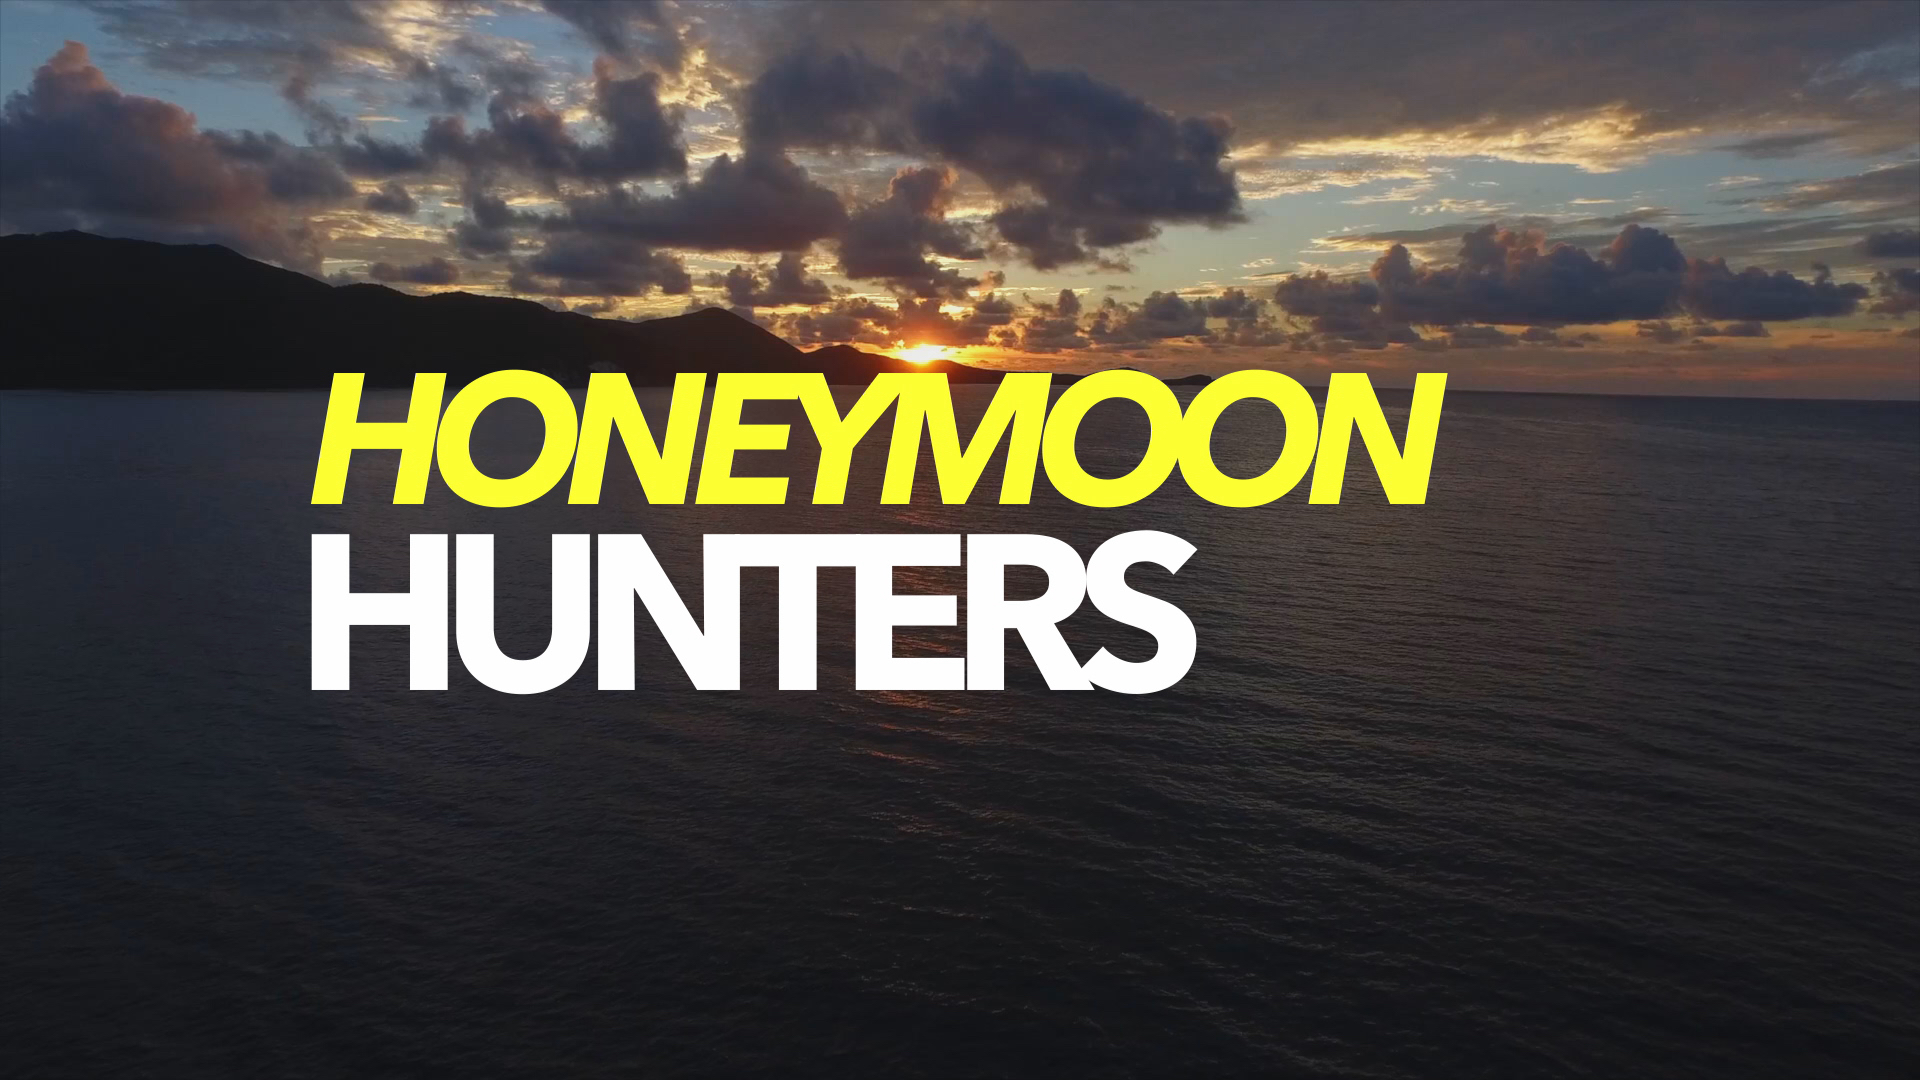 Travel Channel   Honeymoon Hunters takes a newlywed couple on an all-expense-paid trip to three exotic locales.The bride and groom must then choose one of the three to spend their honeymoon in.